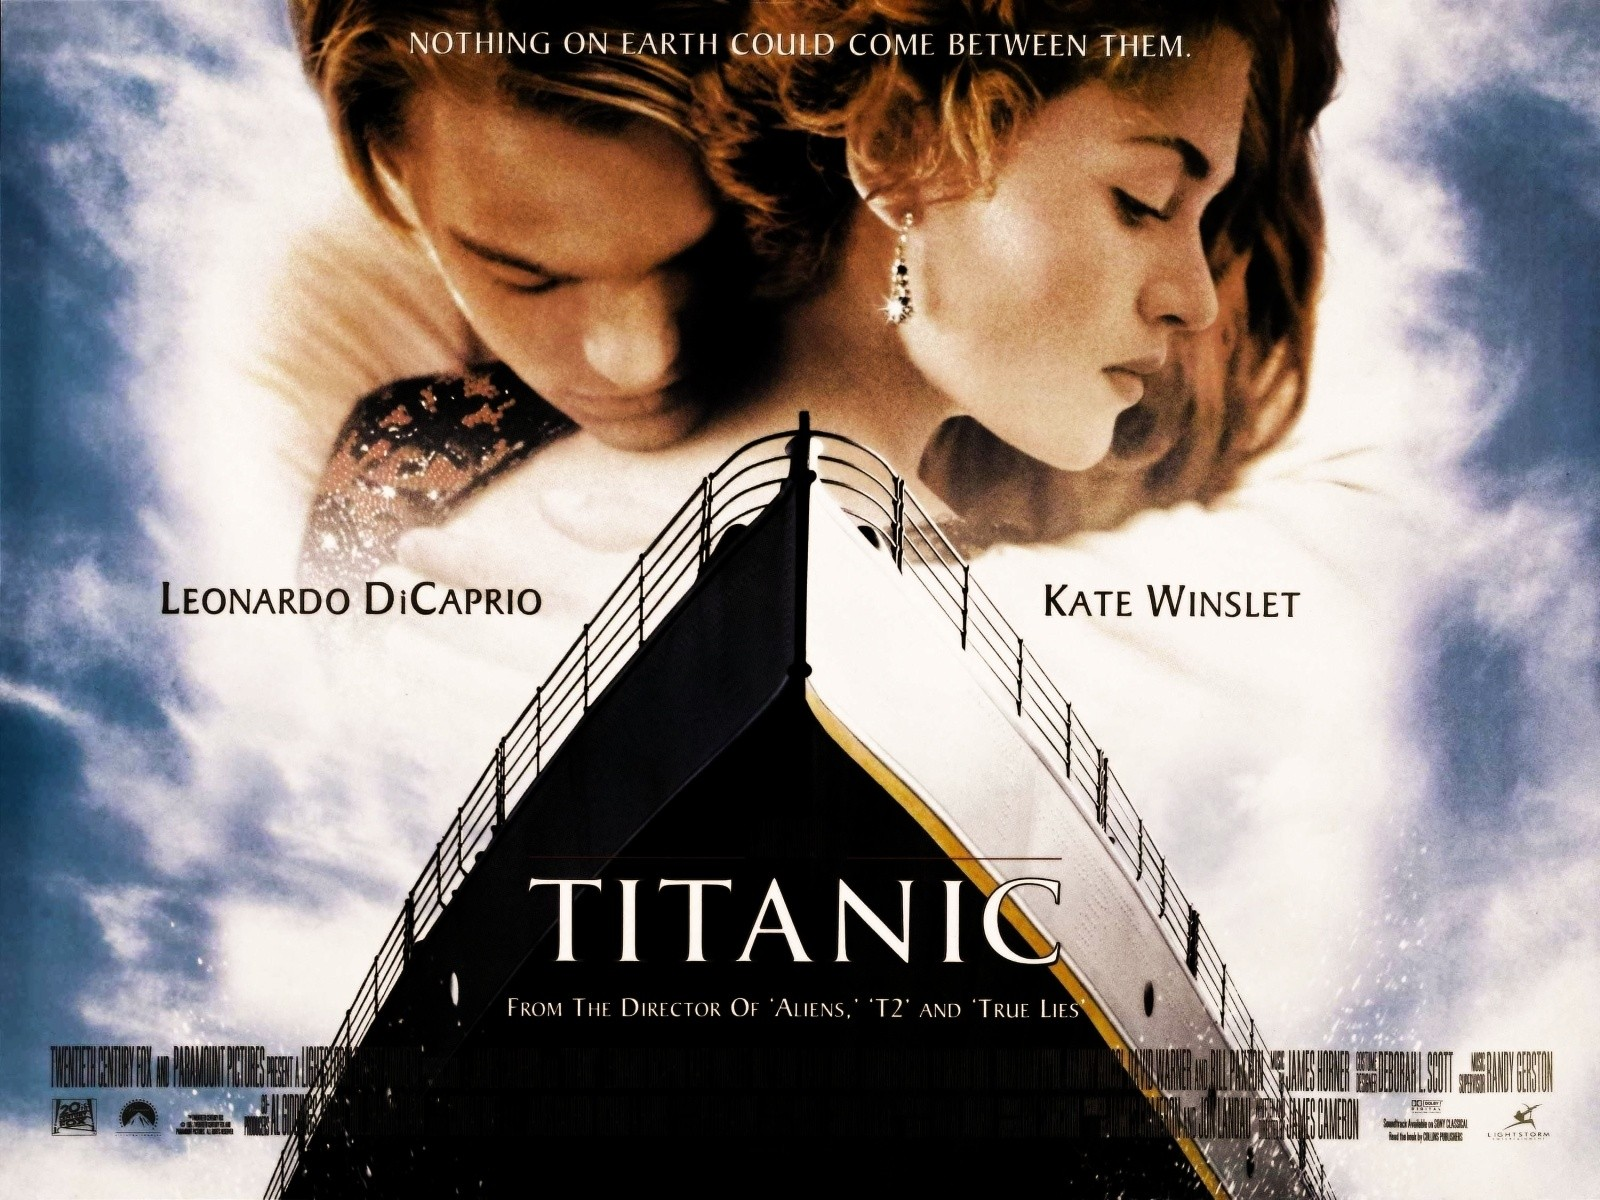 Titanic the Movie